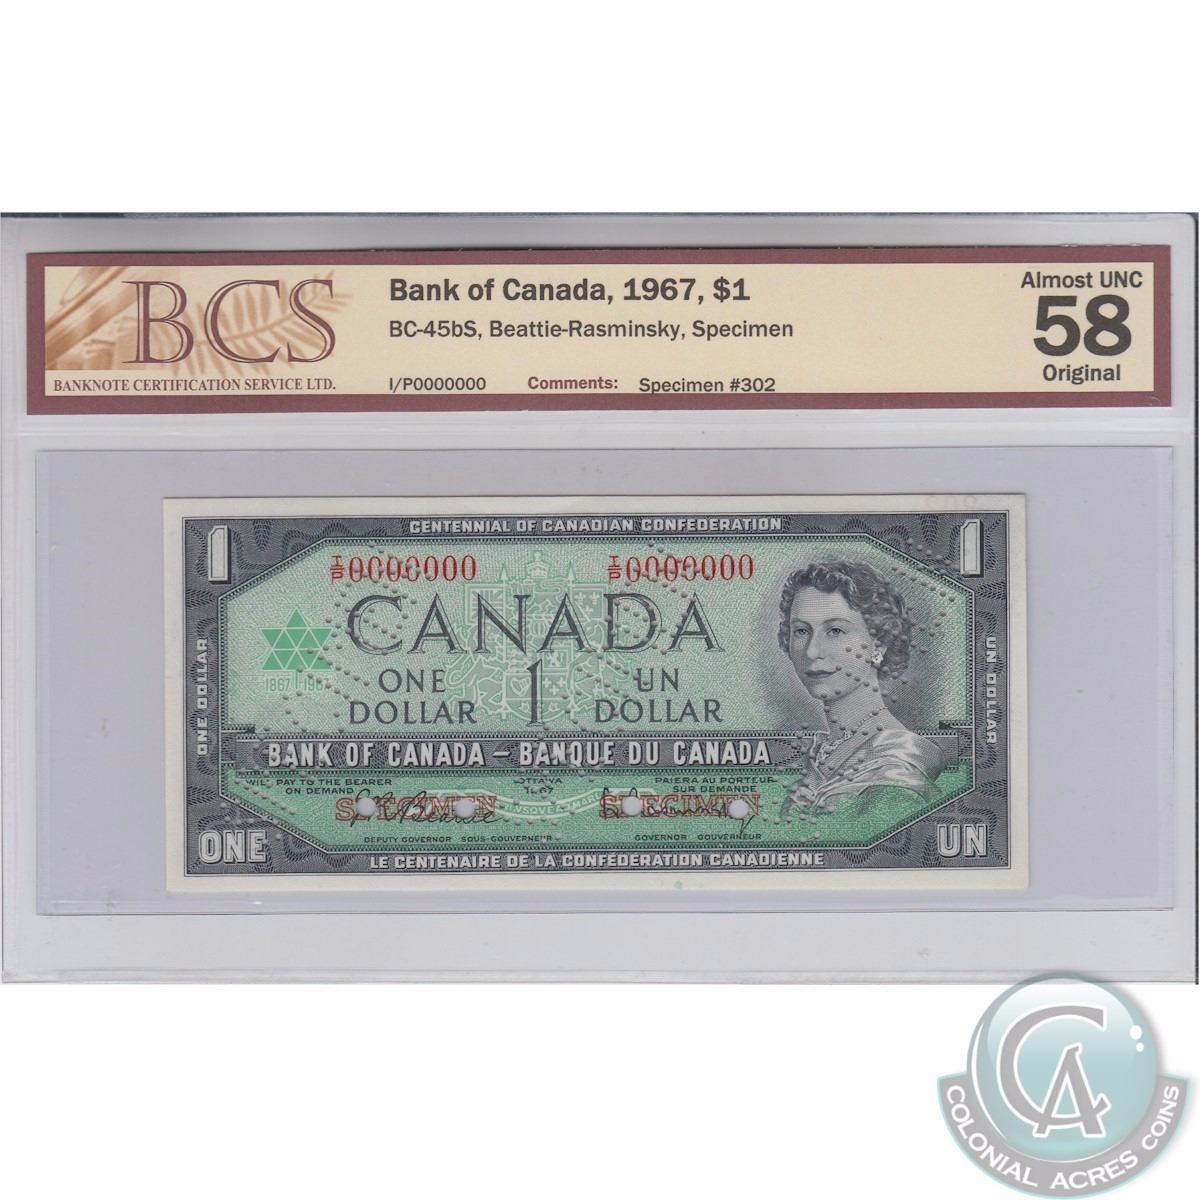 Bc 45bs 1967 Bank Of Canada Specimen 1 Beattie Rasminsky Wiring Money From The Us To 302 S N I P0000000 Bcs Cer